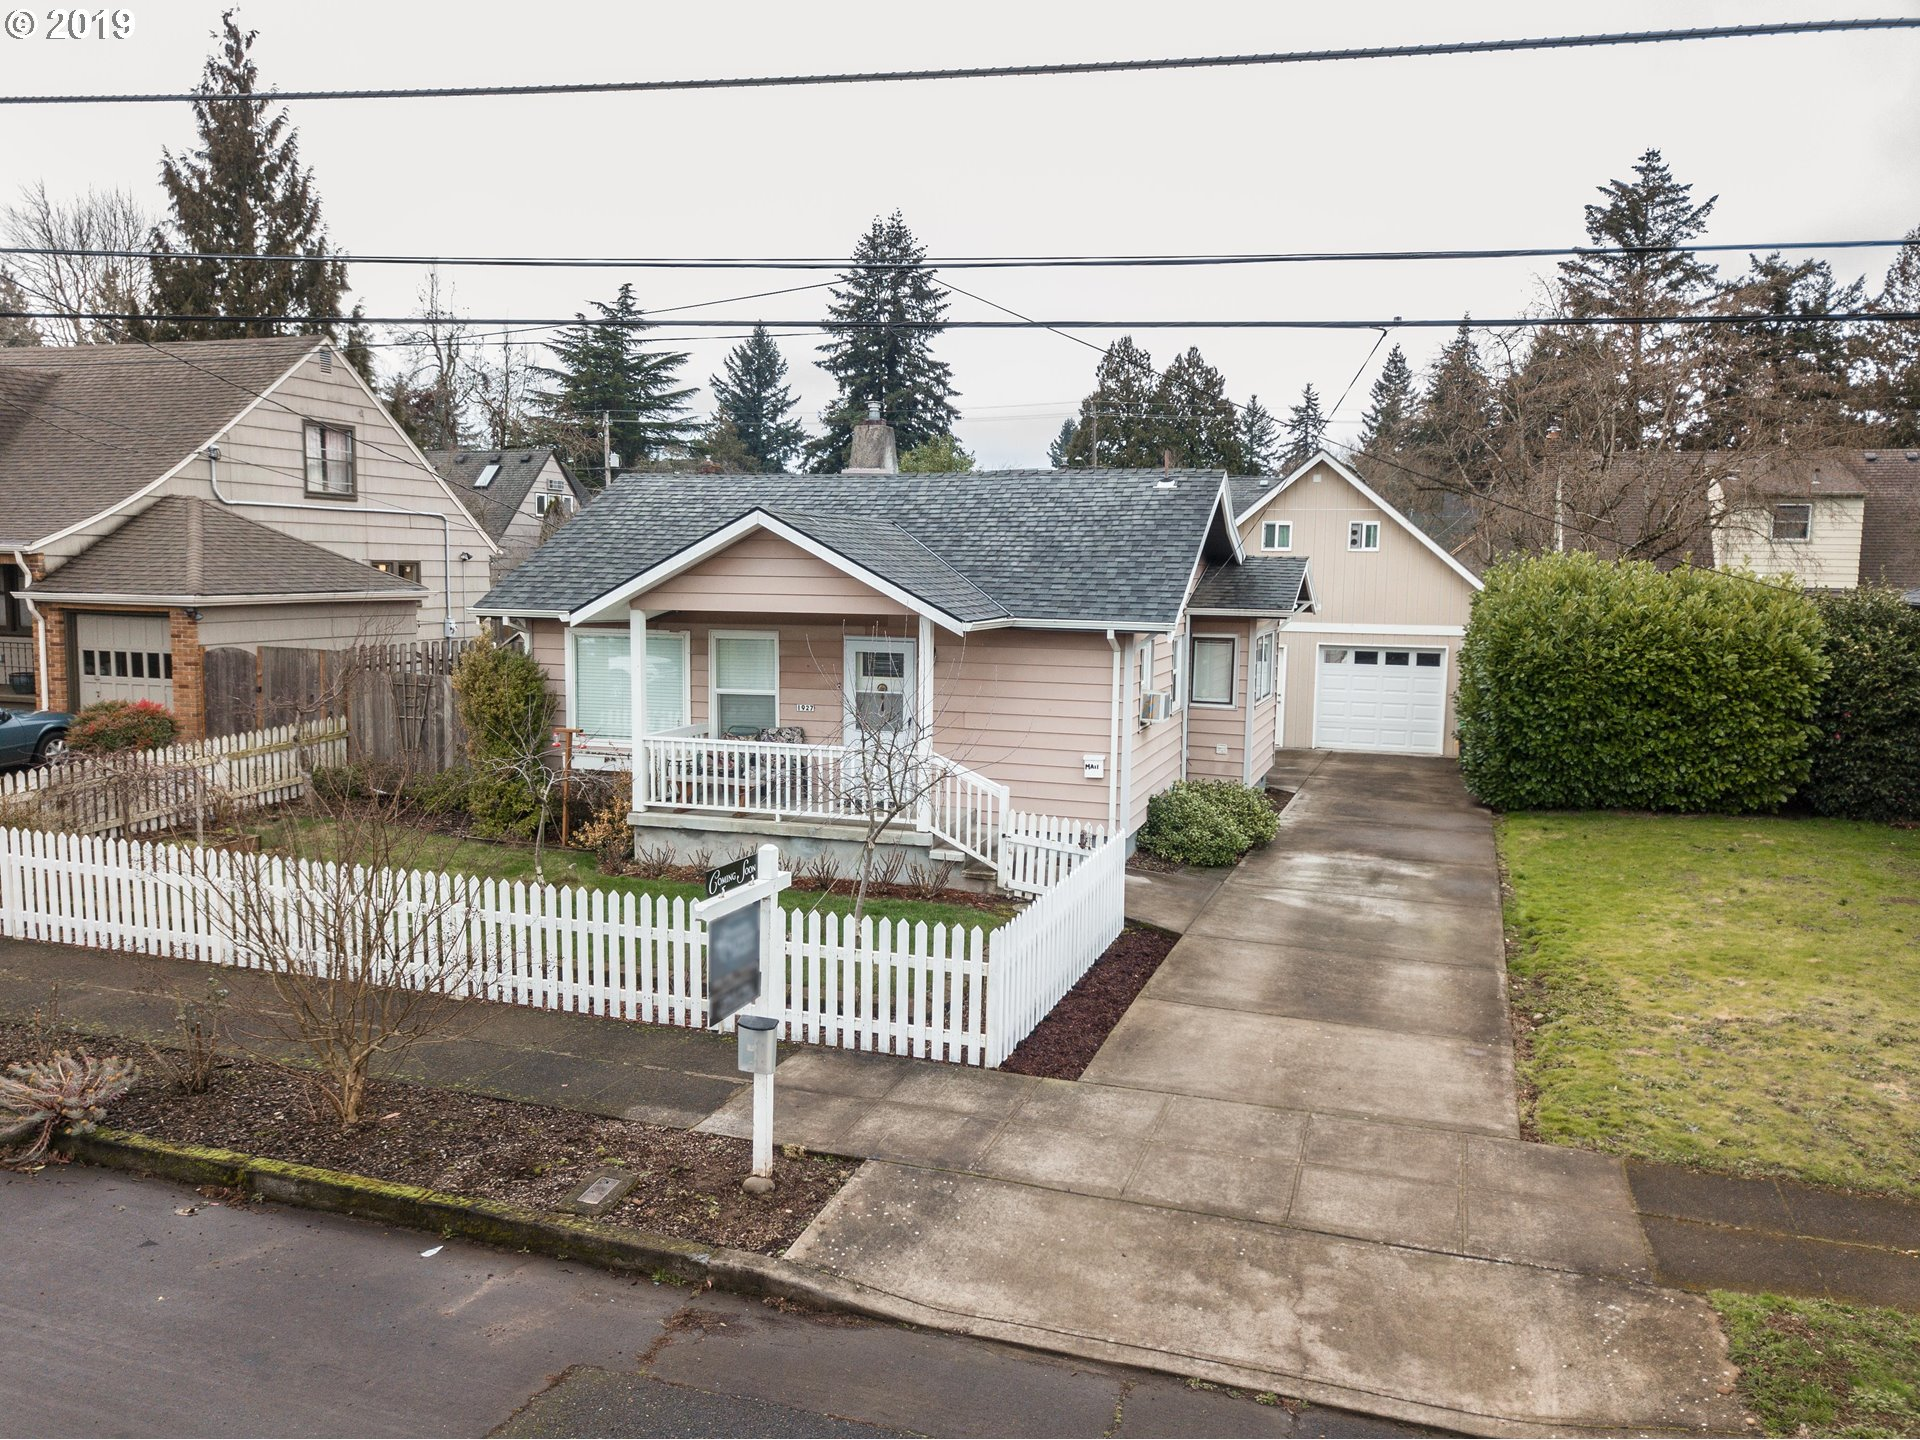 Charming Portland bungalow with converted garage/shop area with loft. Such a great location next to Rose City Park and Golf Course! Gorgeous yard with Summer blooms and a Tuff Shed for the gardener; RV parking and oversized one-car garage with loft ideal for work-at-home studio or hobbies. Finished basement with workshop for some extra privacy.